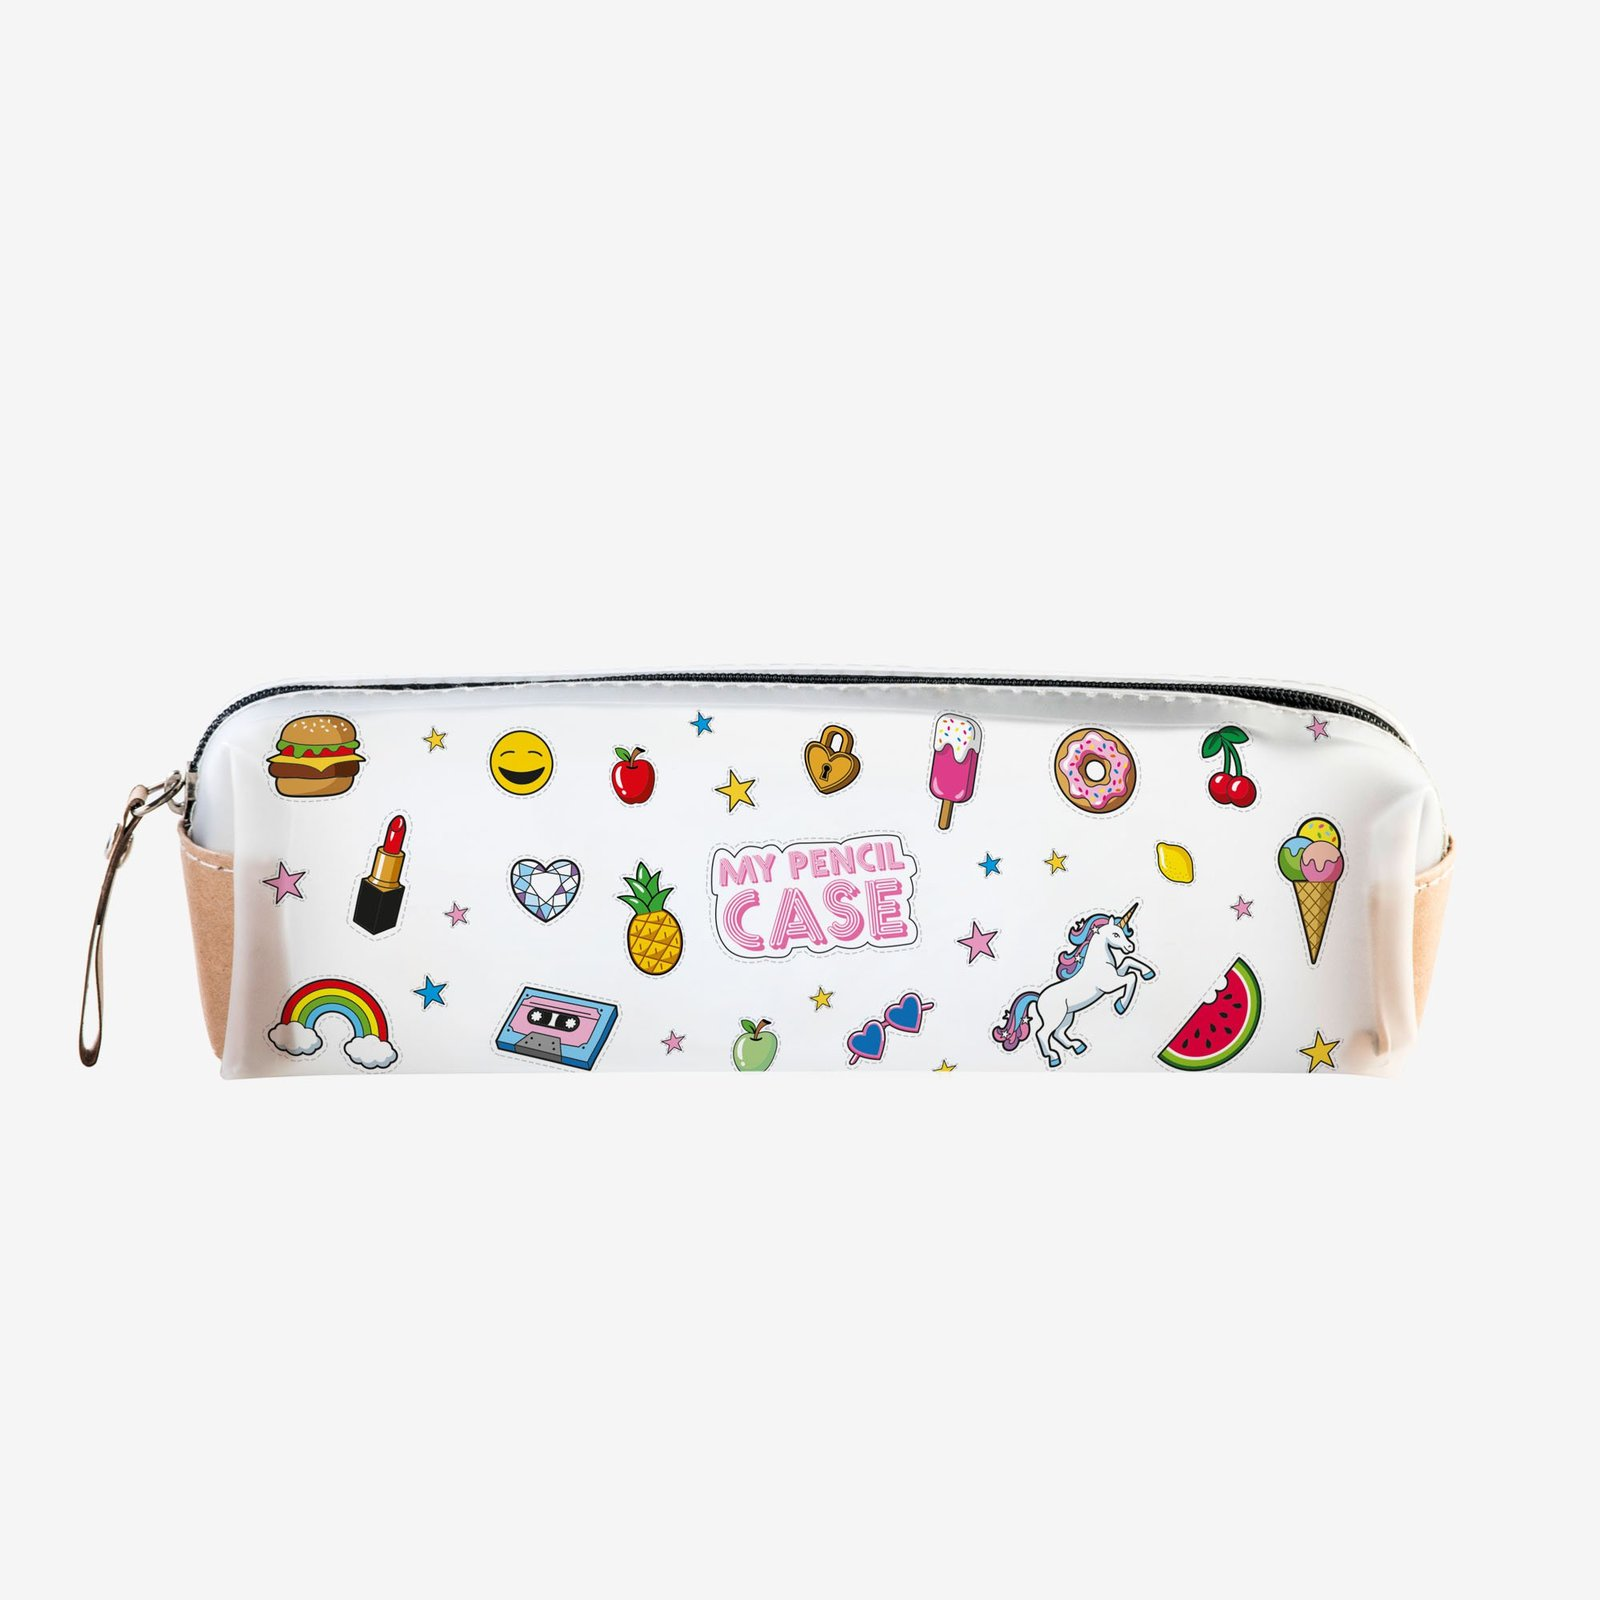 Legami: My Pencil Case Transparent - Pins image